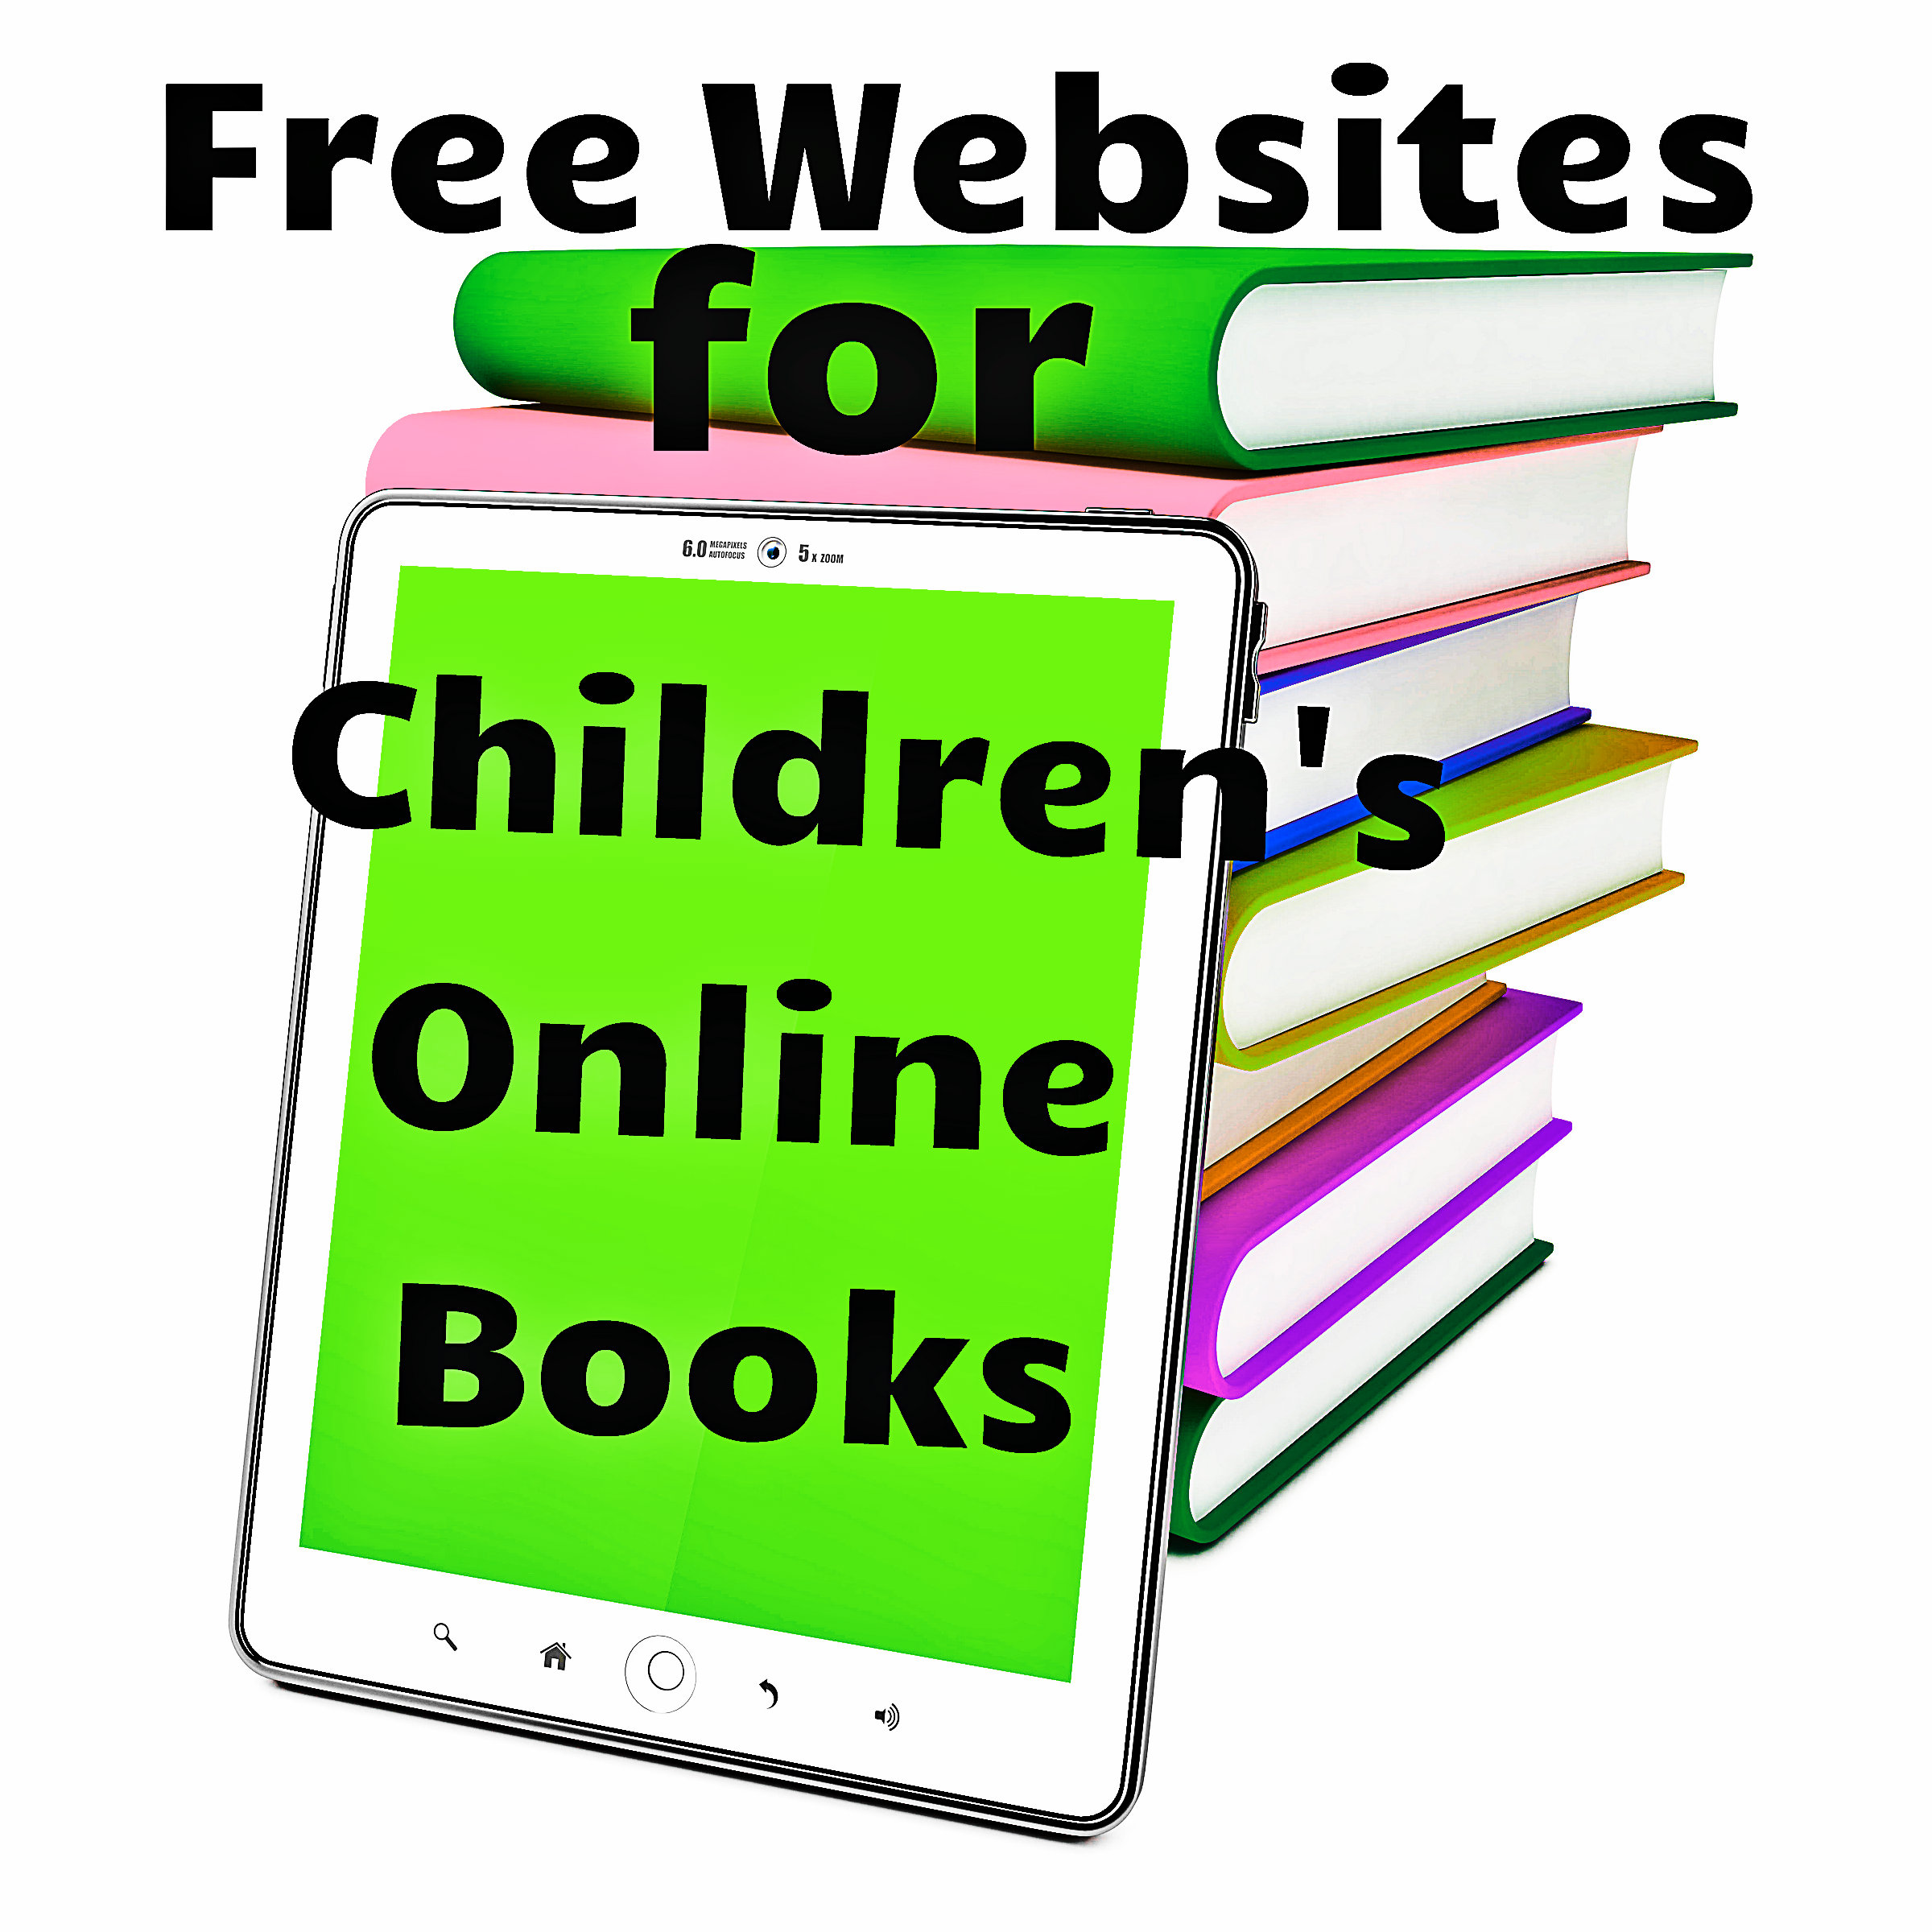 books online to read Download and read free e-books at onreadcom - the best online ebook storage each book is available in several versions: rtf, txt, pdf, epub, palmdoc, fb2, playable on various media devices become a literary critic and write your own review to any book.